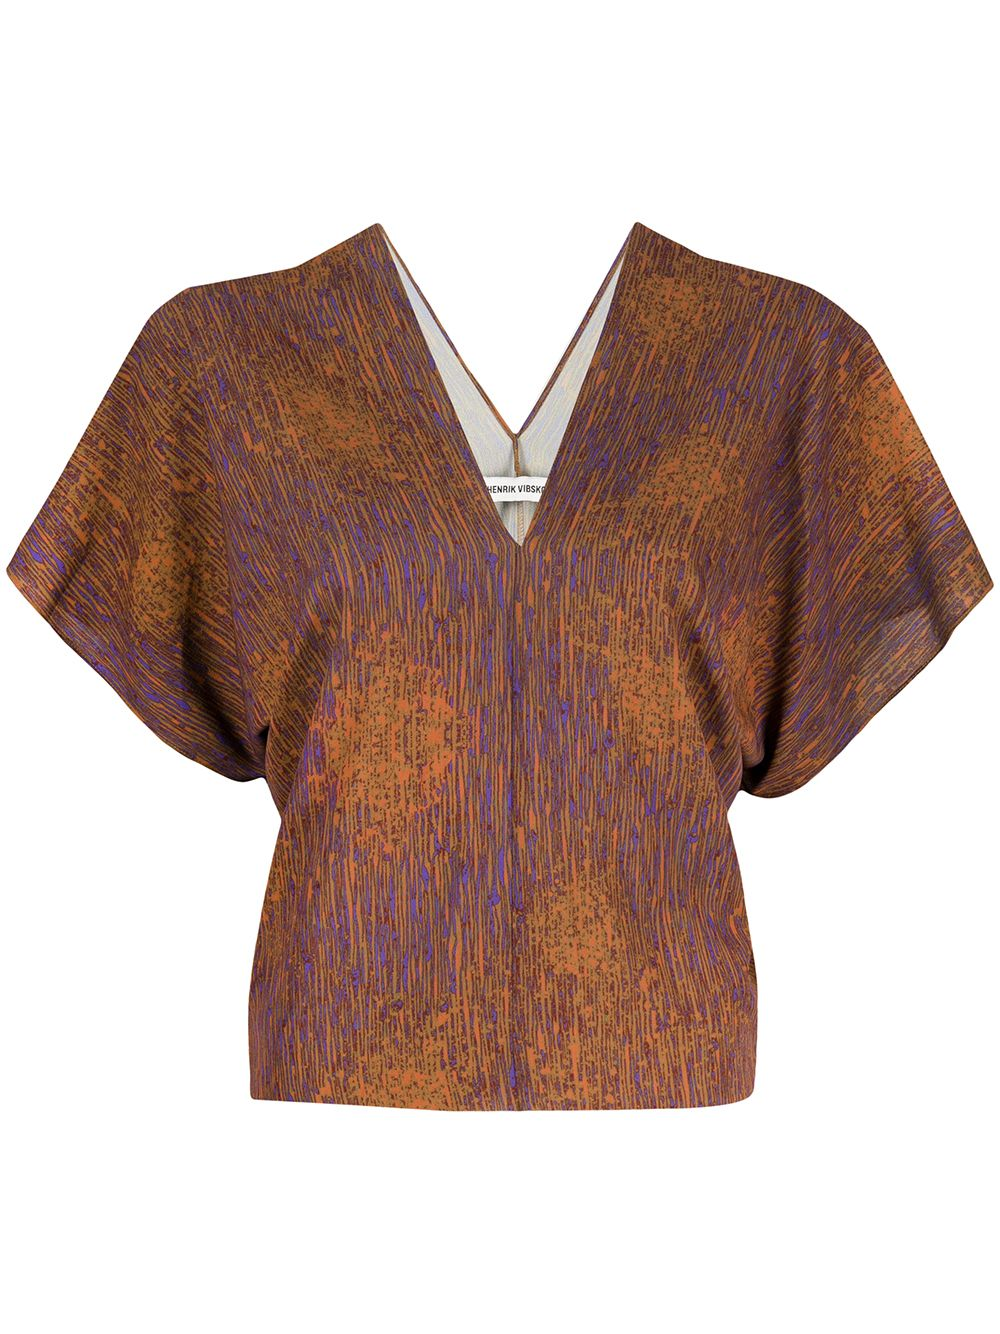 HENRIK VIBSKOV - Jelly Blouse - Melted Rust - COMING SOON